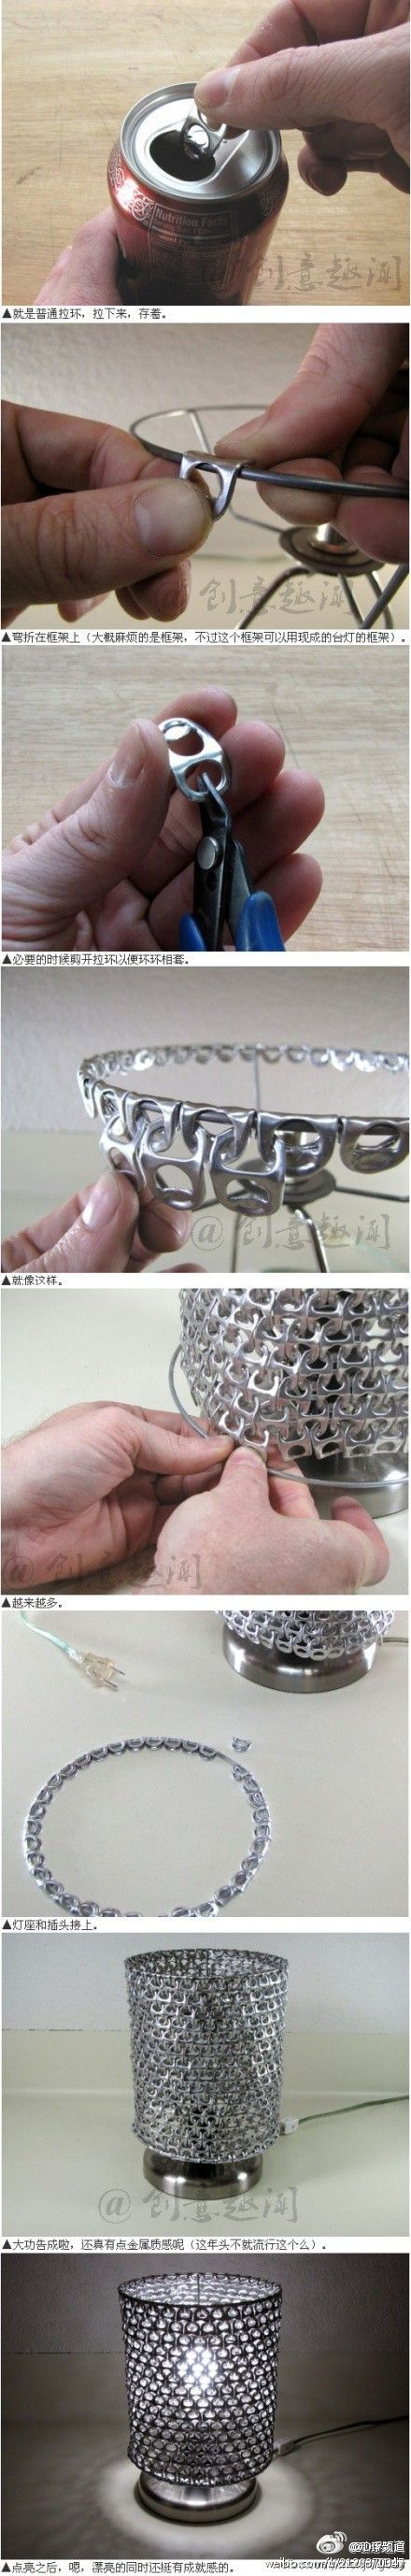 How to Make Lamp With Aluminum Cans